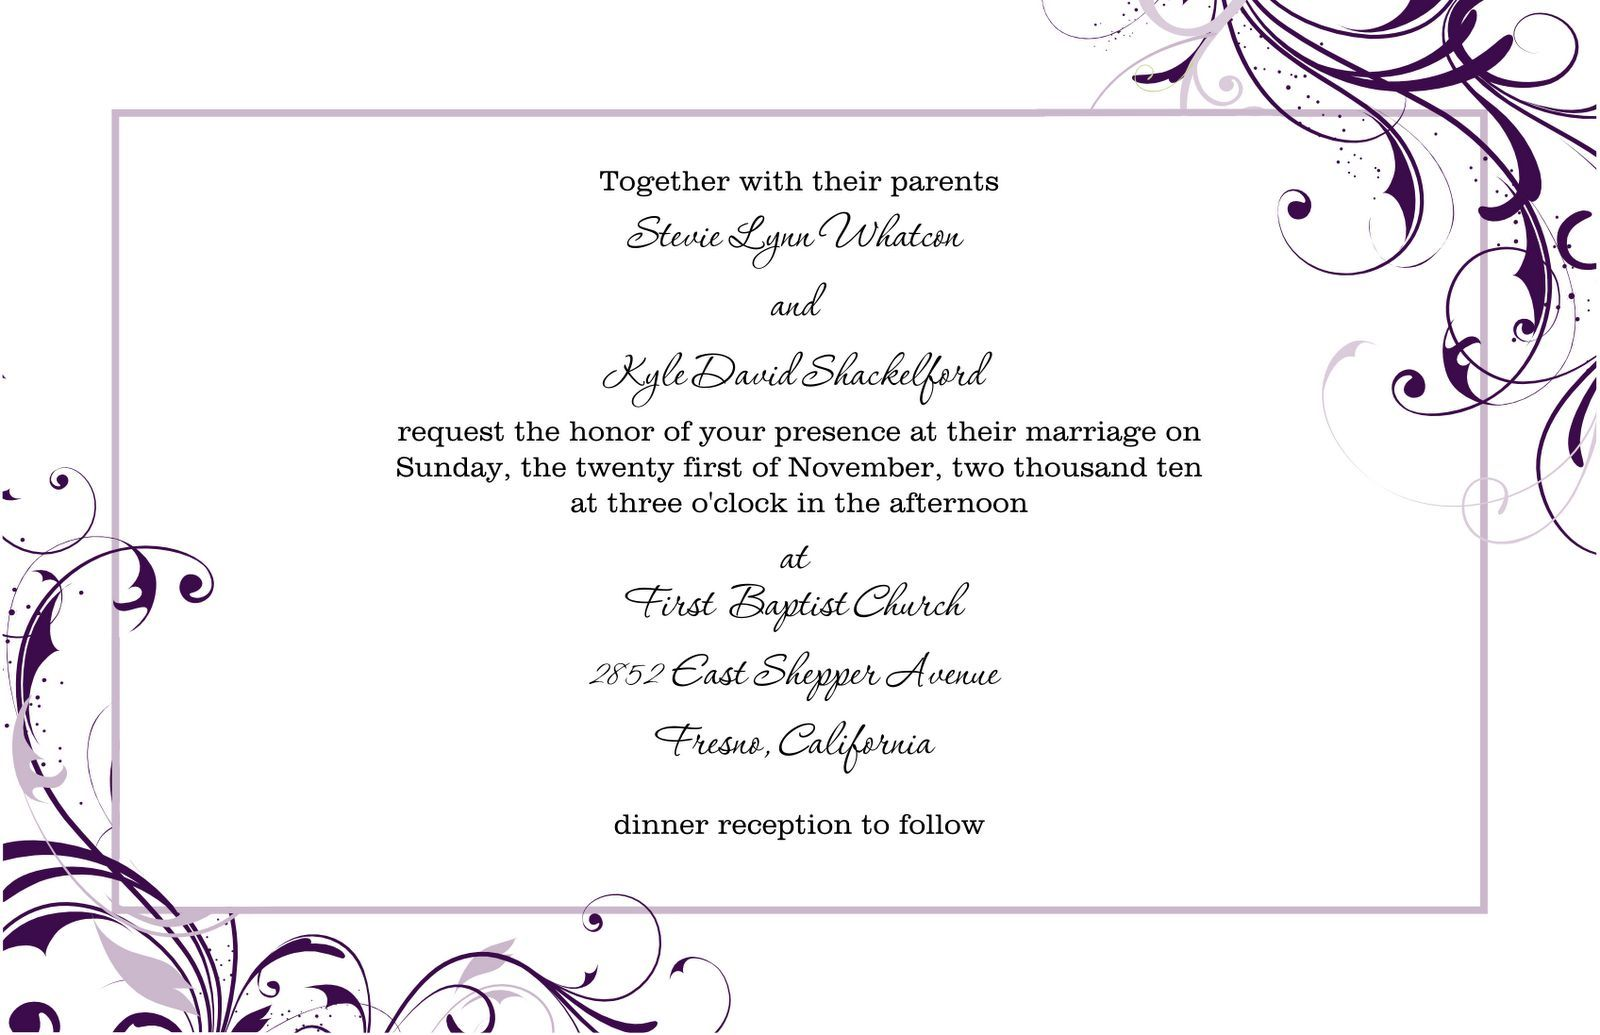 Free blank wedding invitation templates for microsoft word wedding free blank wedding invitation templates for microsoft word stopboris Images